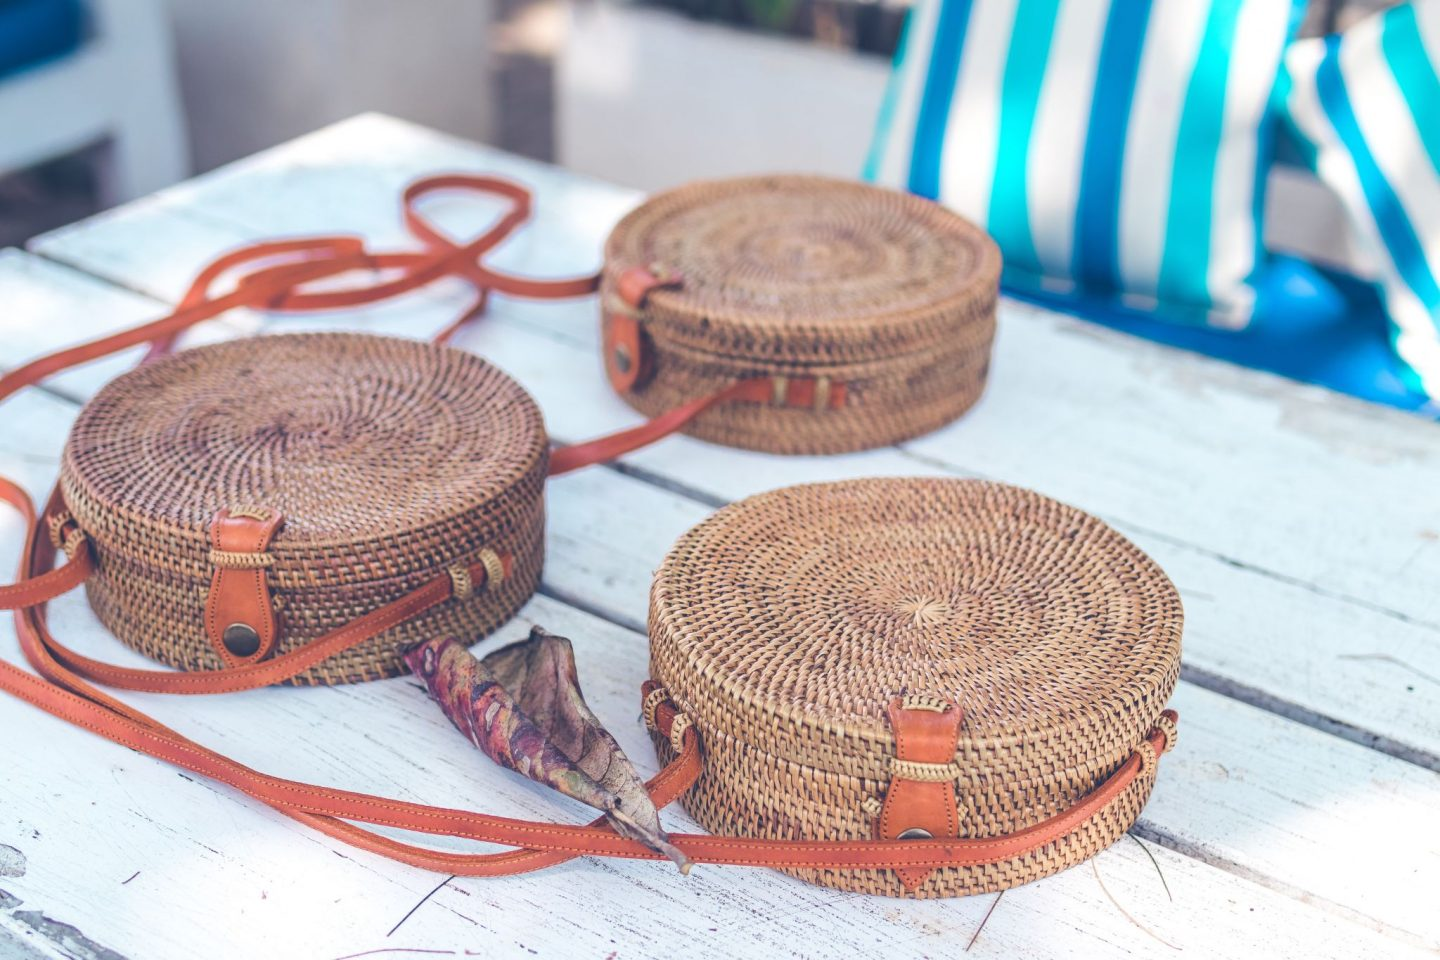 Woven Bags Under $100